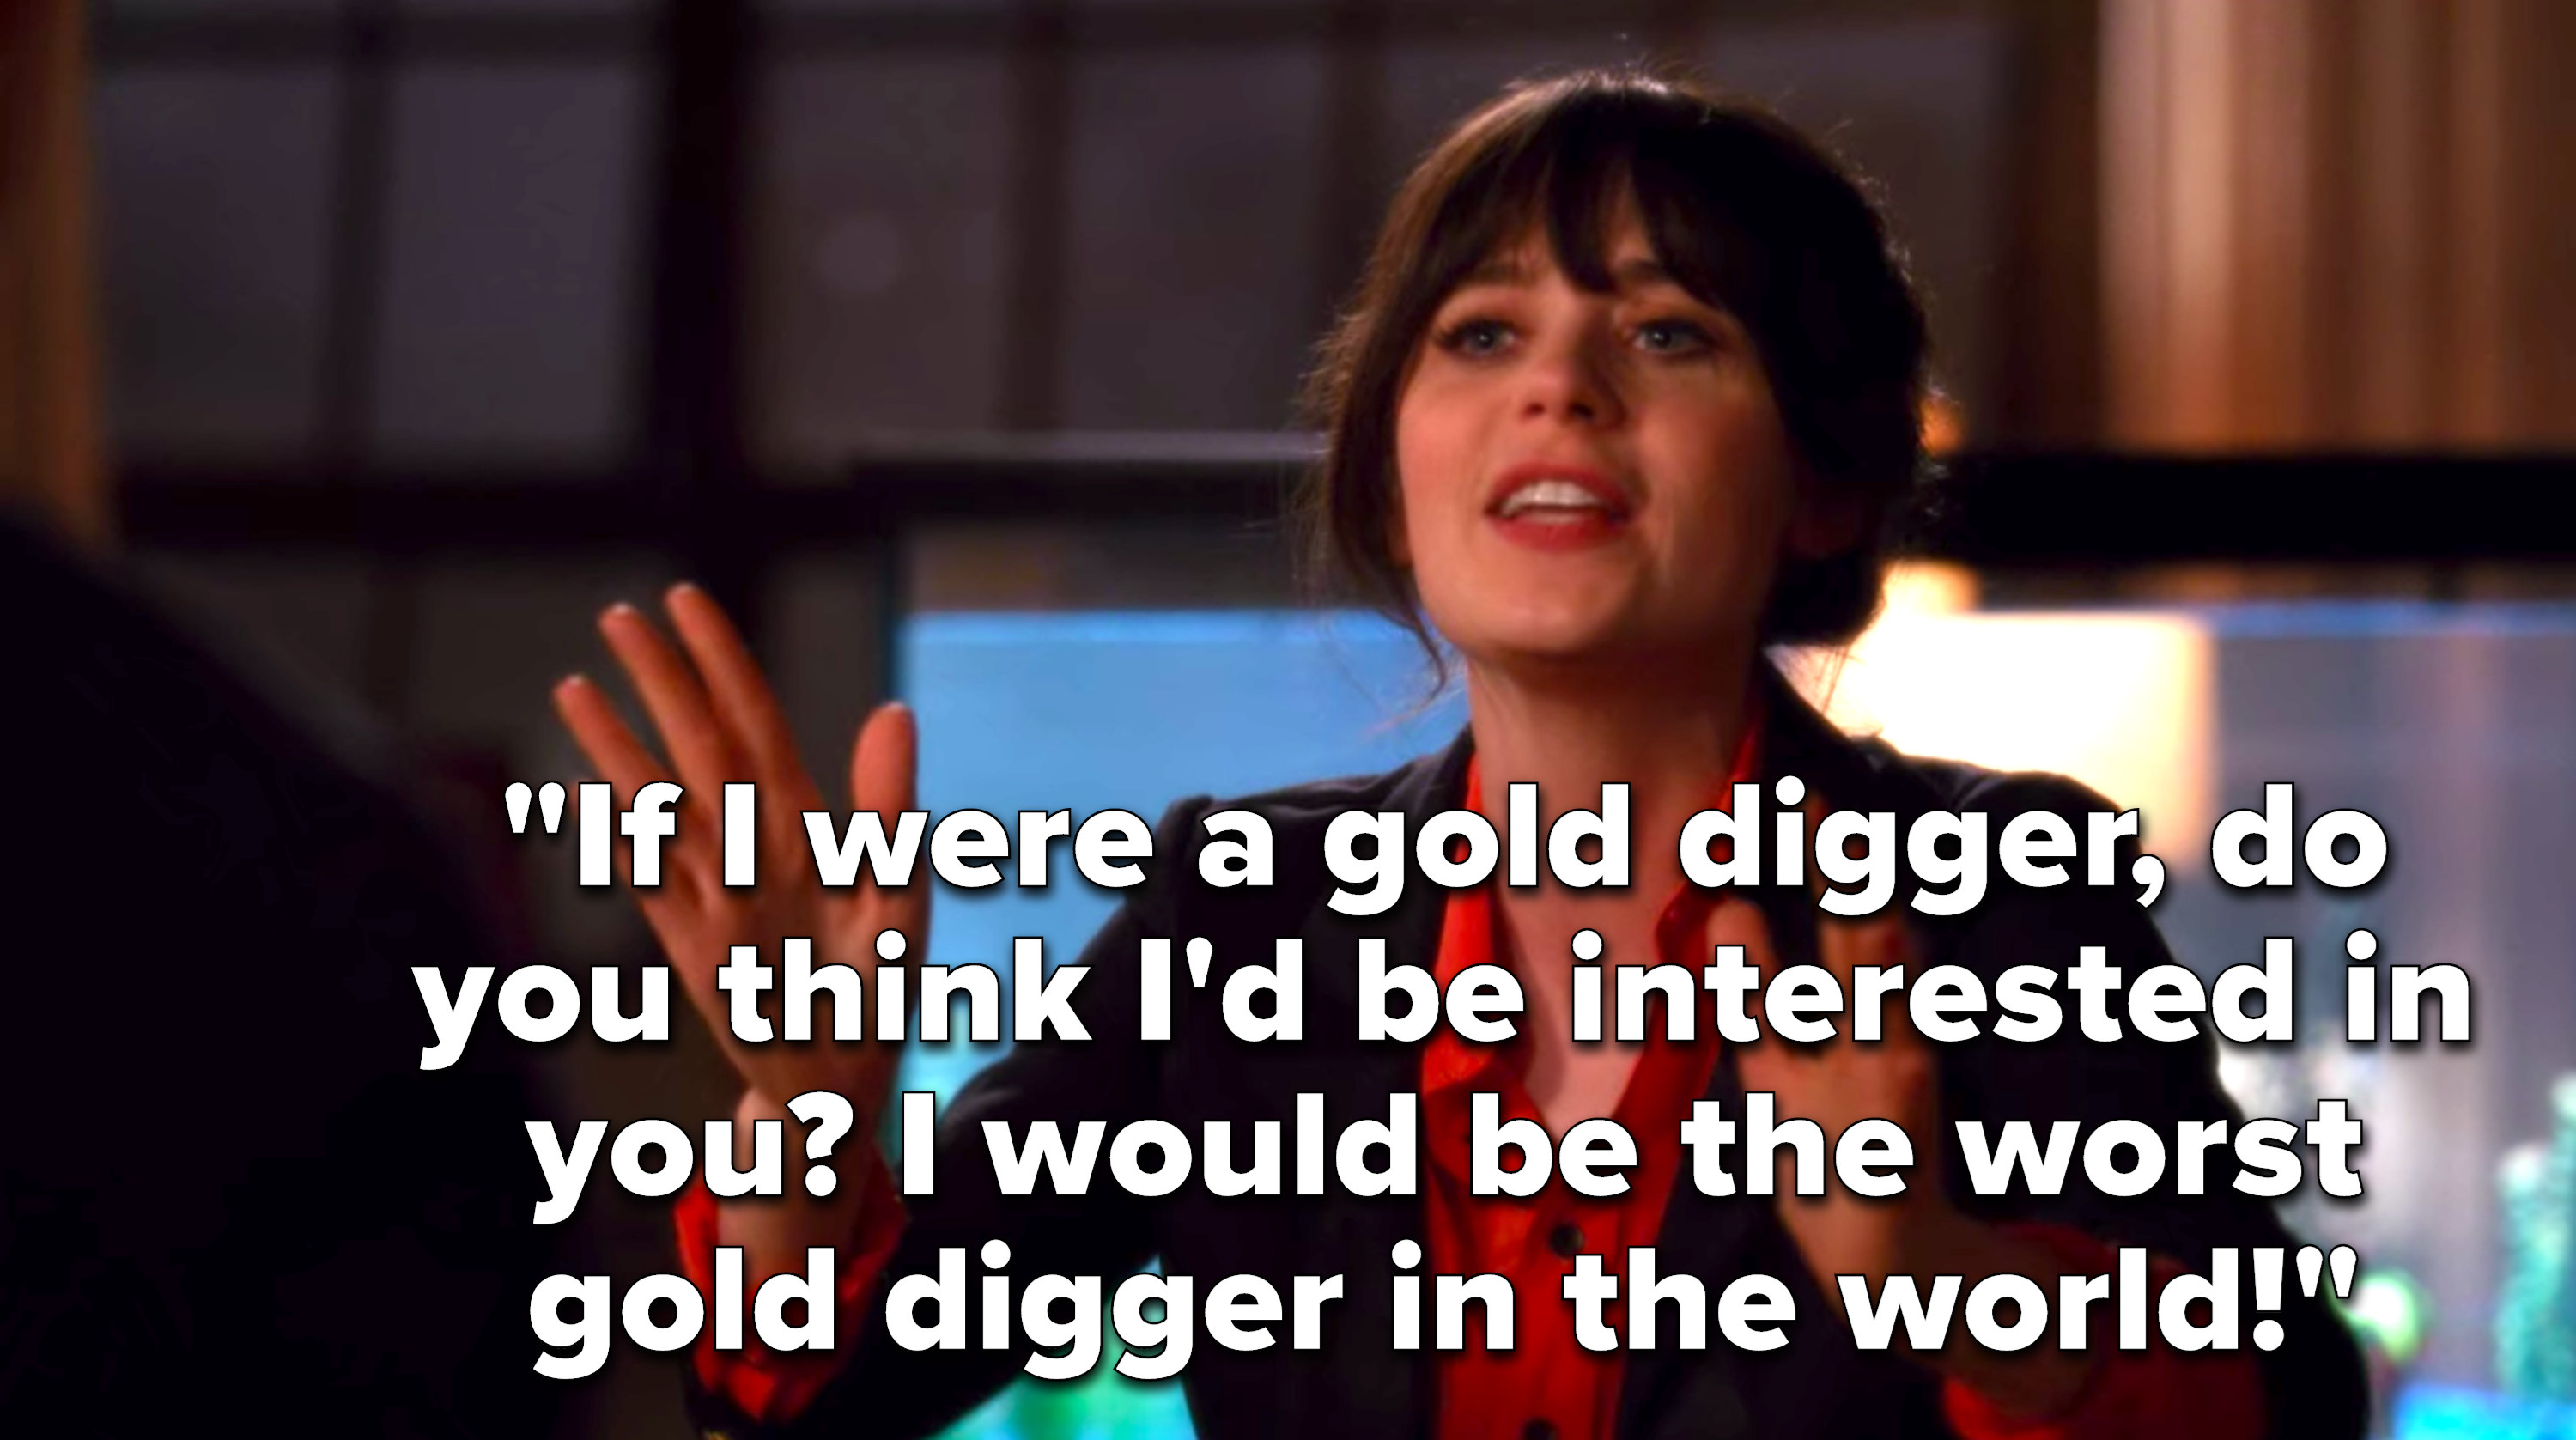 Jess says, If I were a gold digger, do you think I'd be interested in you, I would be the worst gold digger in the world